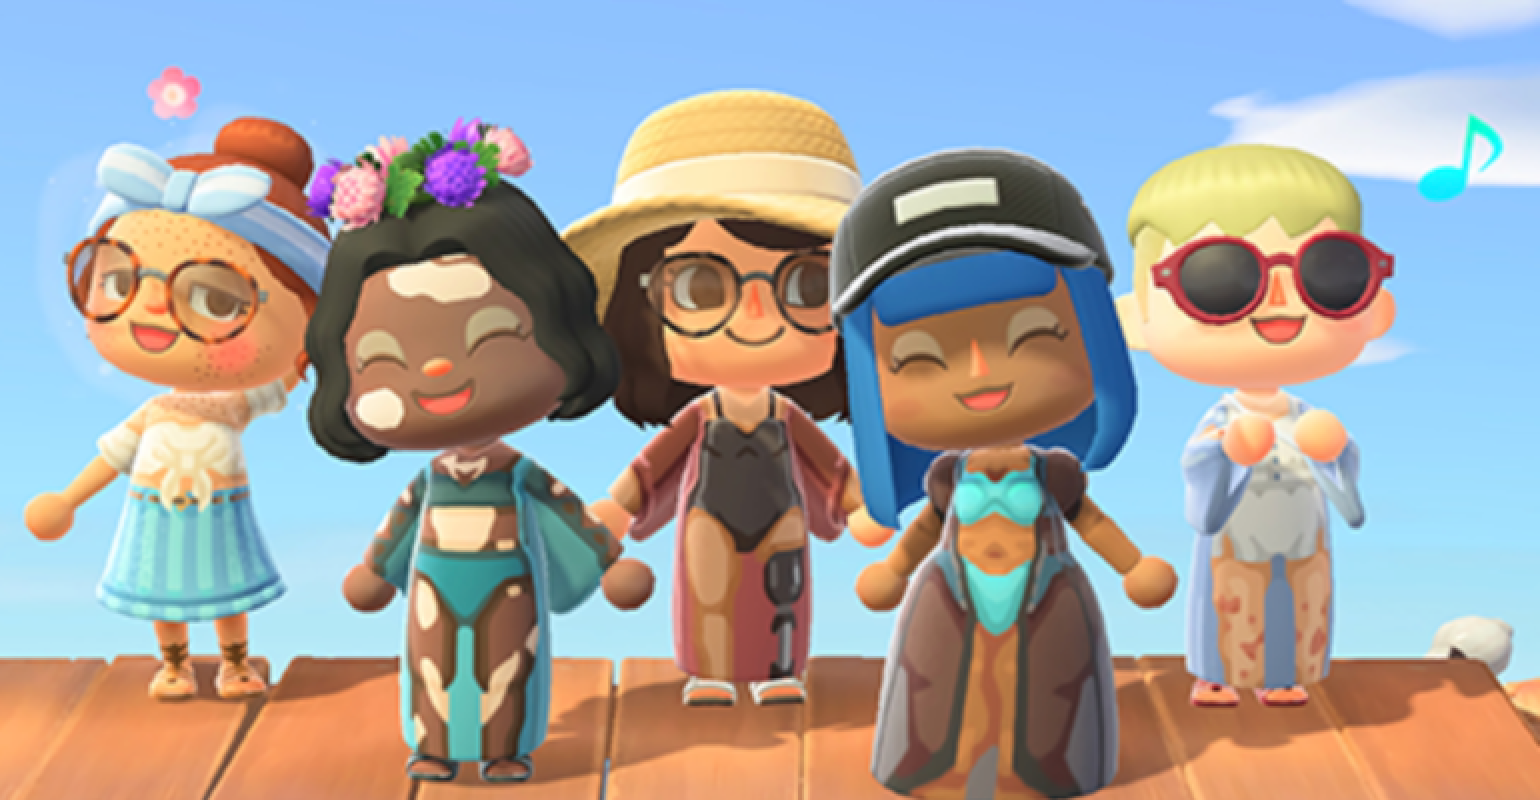 Photo of Gillette's Inclusive Designs Show the Strengths and Weaknesses of Animal Crossing's Customization